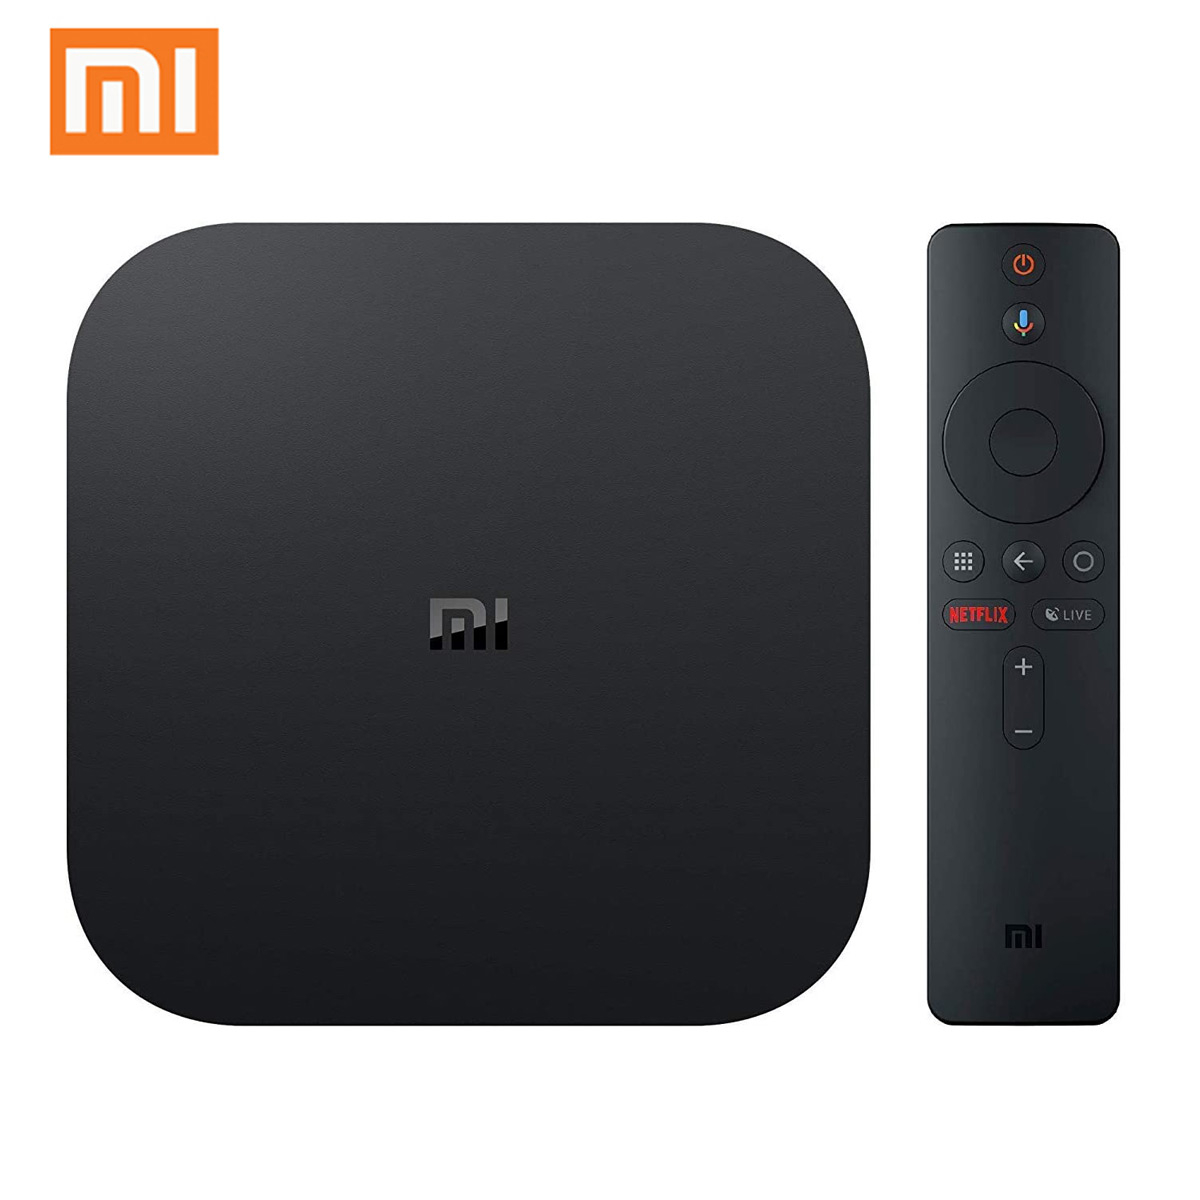 Xiaomi Mi Box S 2GB DDR3 8GB 4K Ultra HD HDR Android 9.0 5G WIFI bluetooth 4.2 TV Box Streaming Media Player with Voice Control Global Version – EU